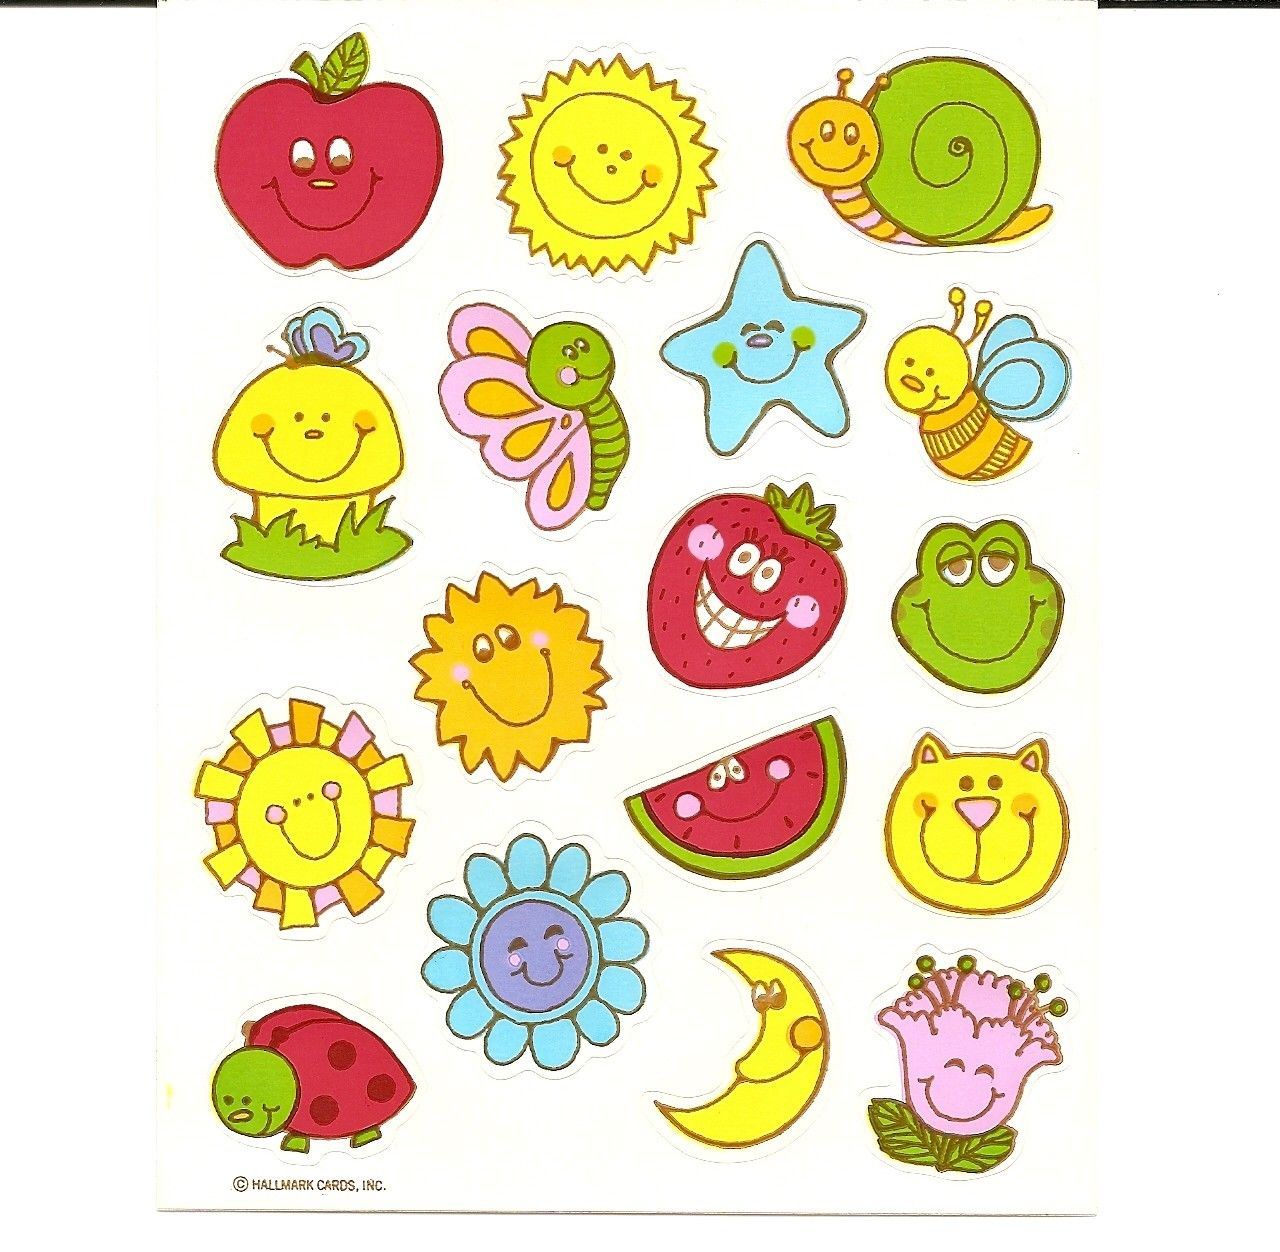 Vintage Hallmark Stickers Sheet I Had These We Would Buy Packs